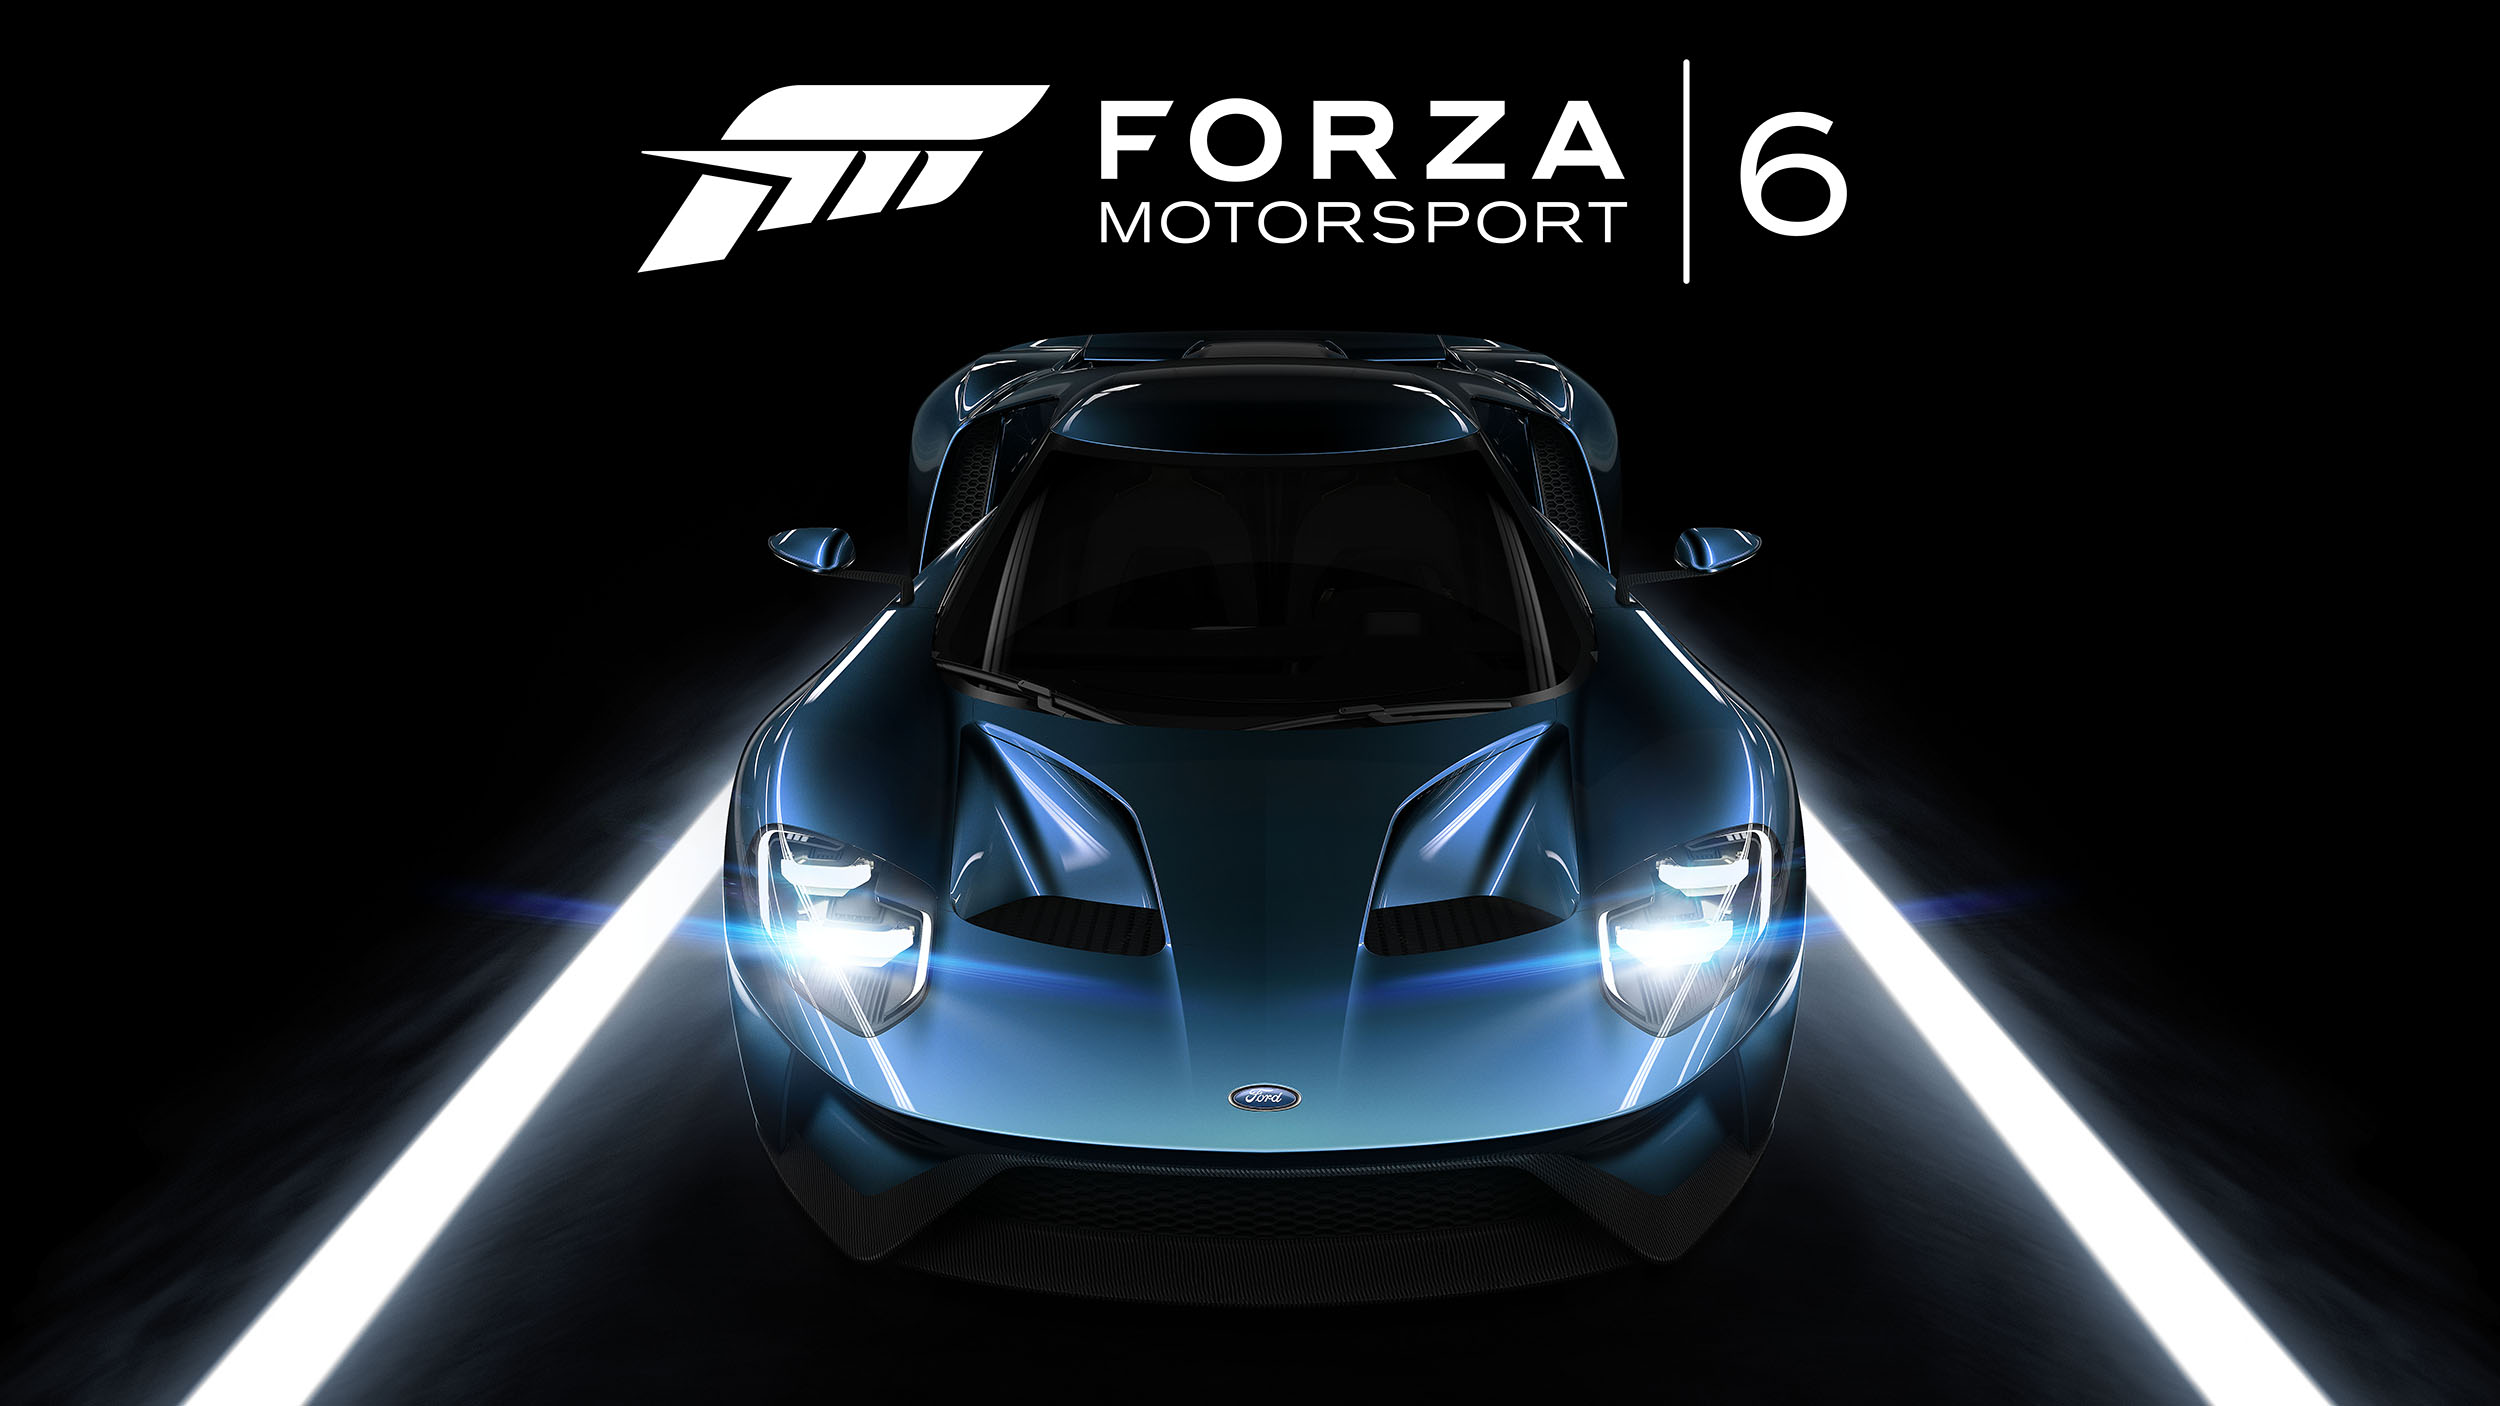 Forza Motorsport 6 Announced For Xbox One, Check Out The First Vehicles #32479